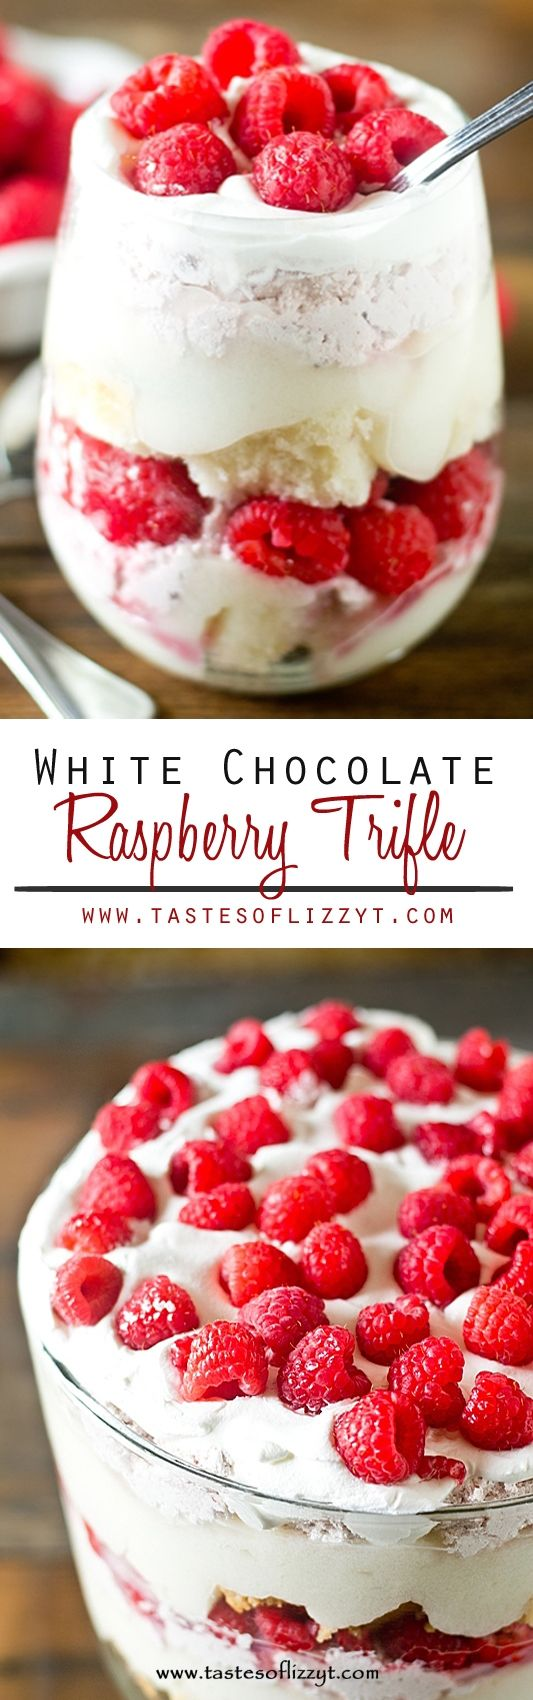 White Chocolate Raspberry Trifle  Recipe - Layers of cake, white chocolate pudding and raspberry cream.